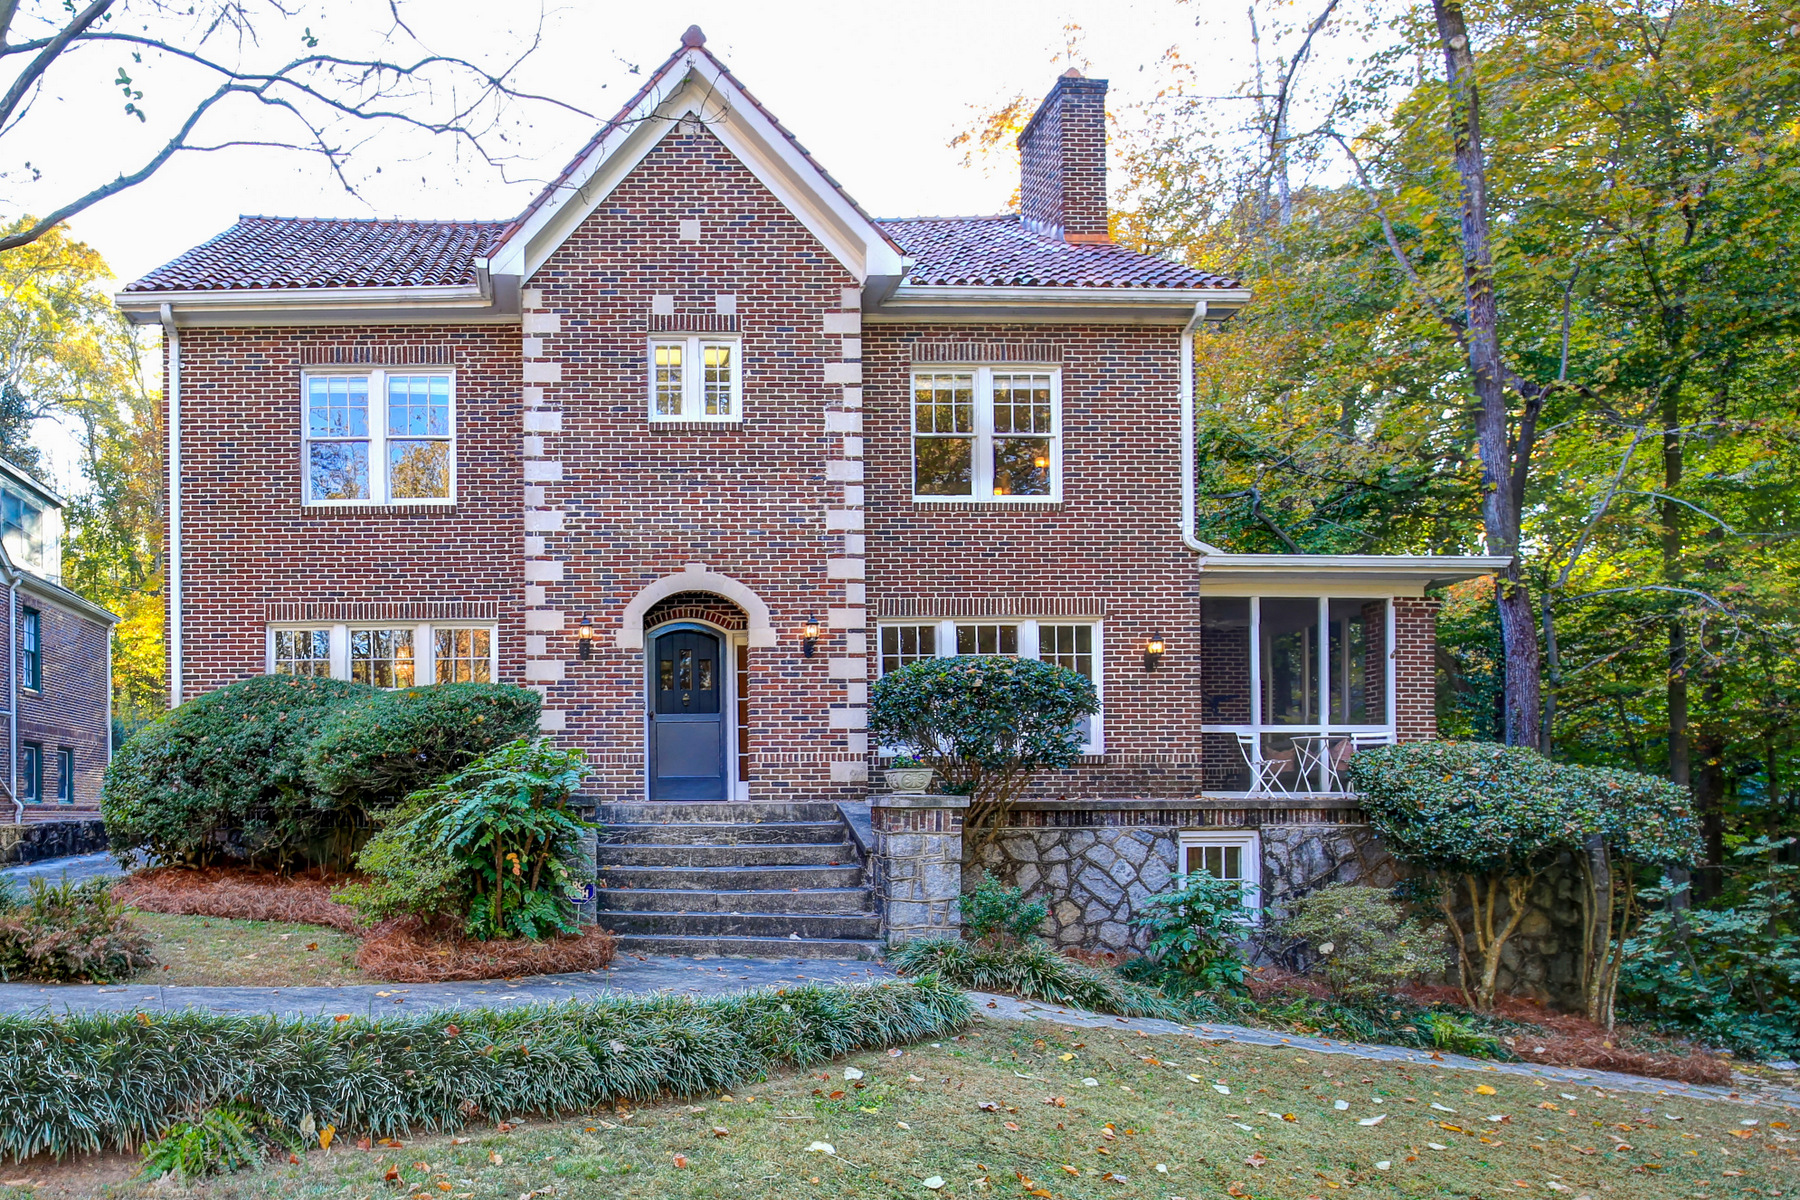 一戸建て のために 売買 アット Stately 1922 Architectural Beauty Offers Elegant Style with Modern Sensibility 1776 E Clifton Road Druid Hills, Atlanta, ジョージア, 30307 アメリカ合衆国